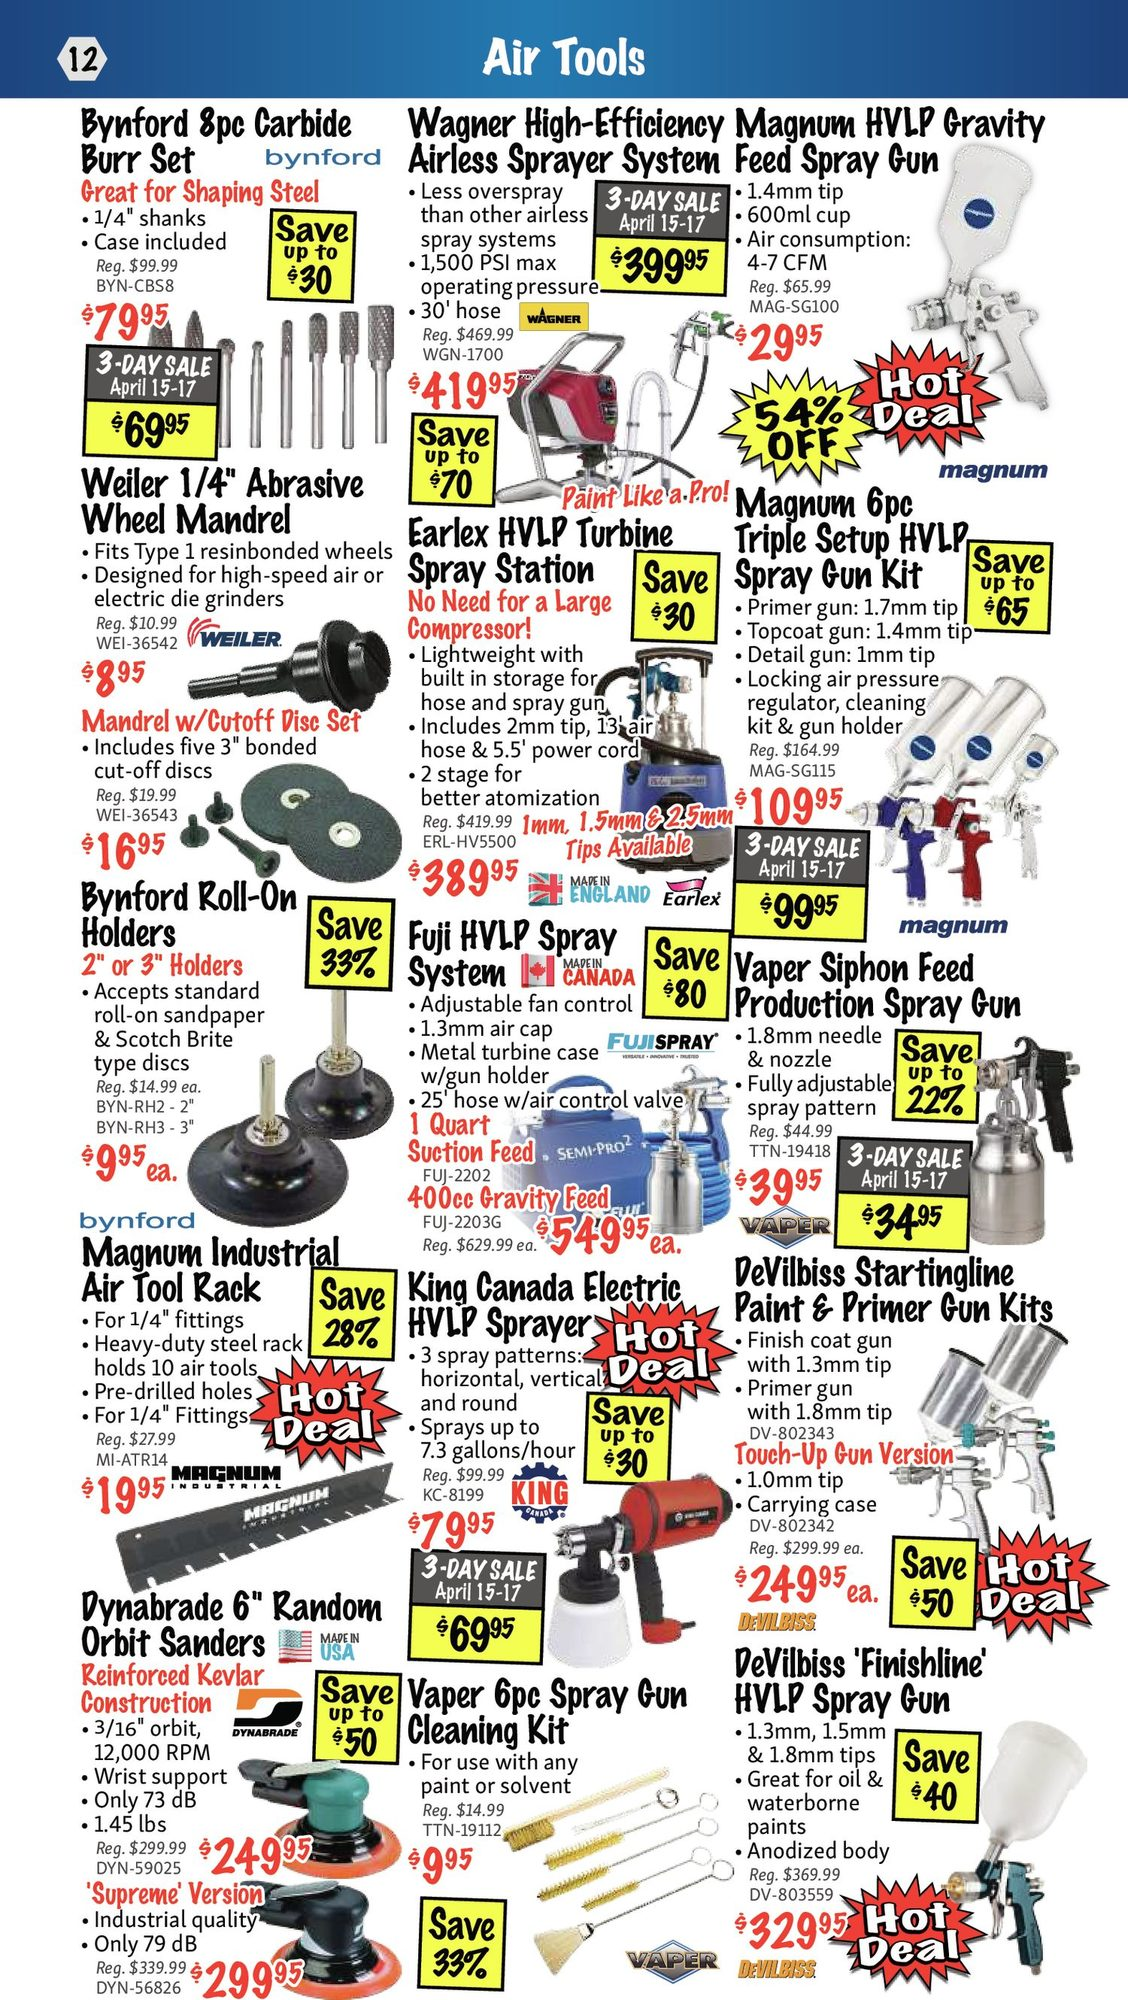 KMS Tools - Hand Tools, Air Tools & Compressor Sale - Page 12